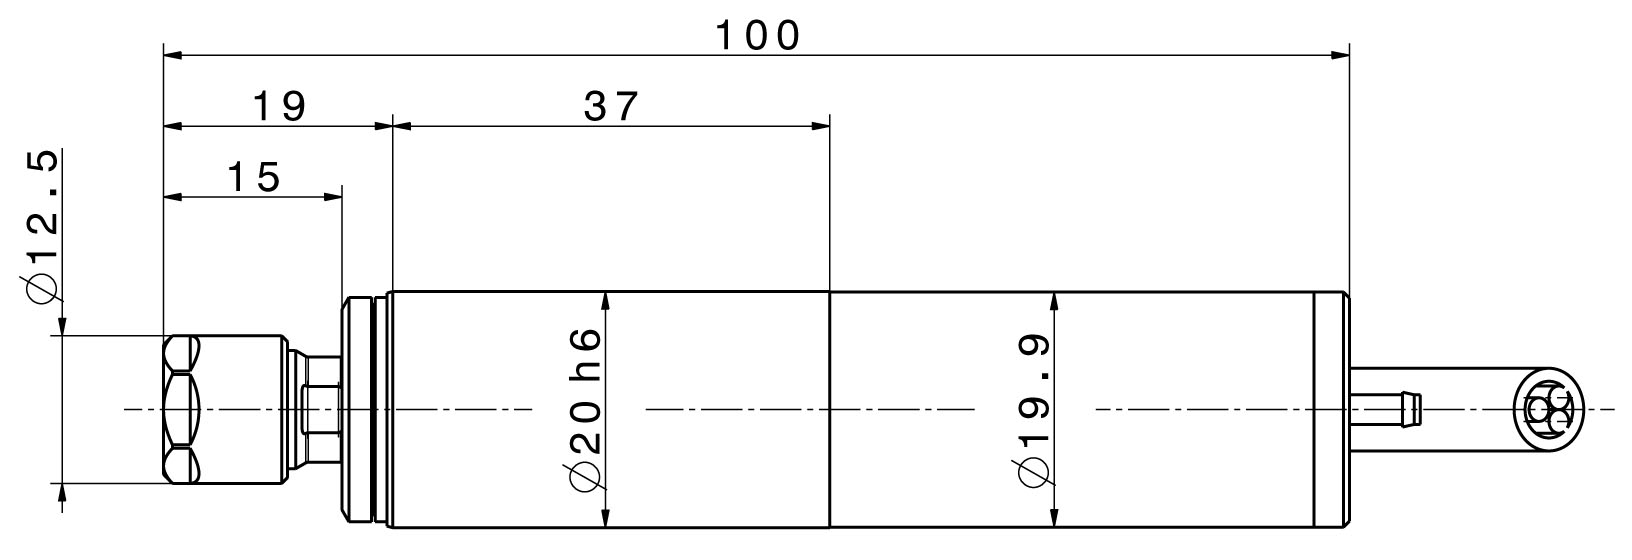 Type 4020 dimensions